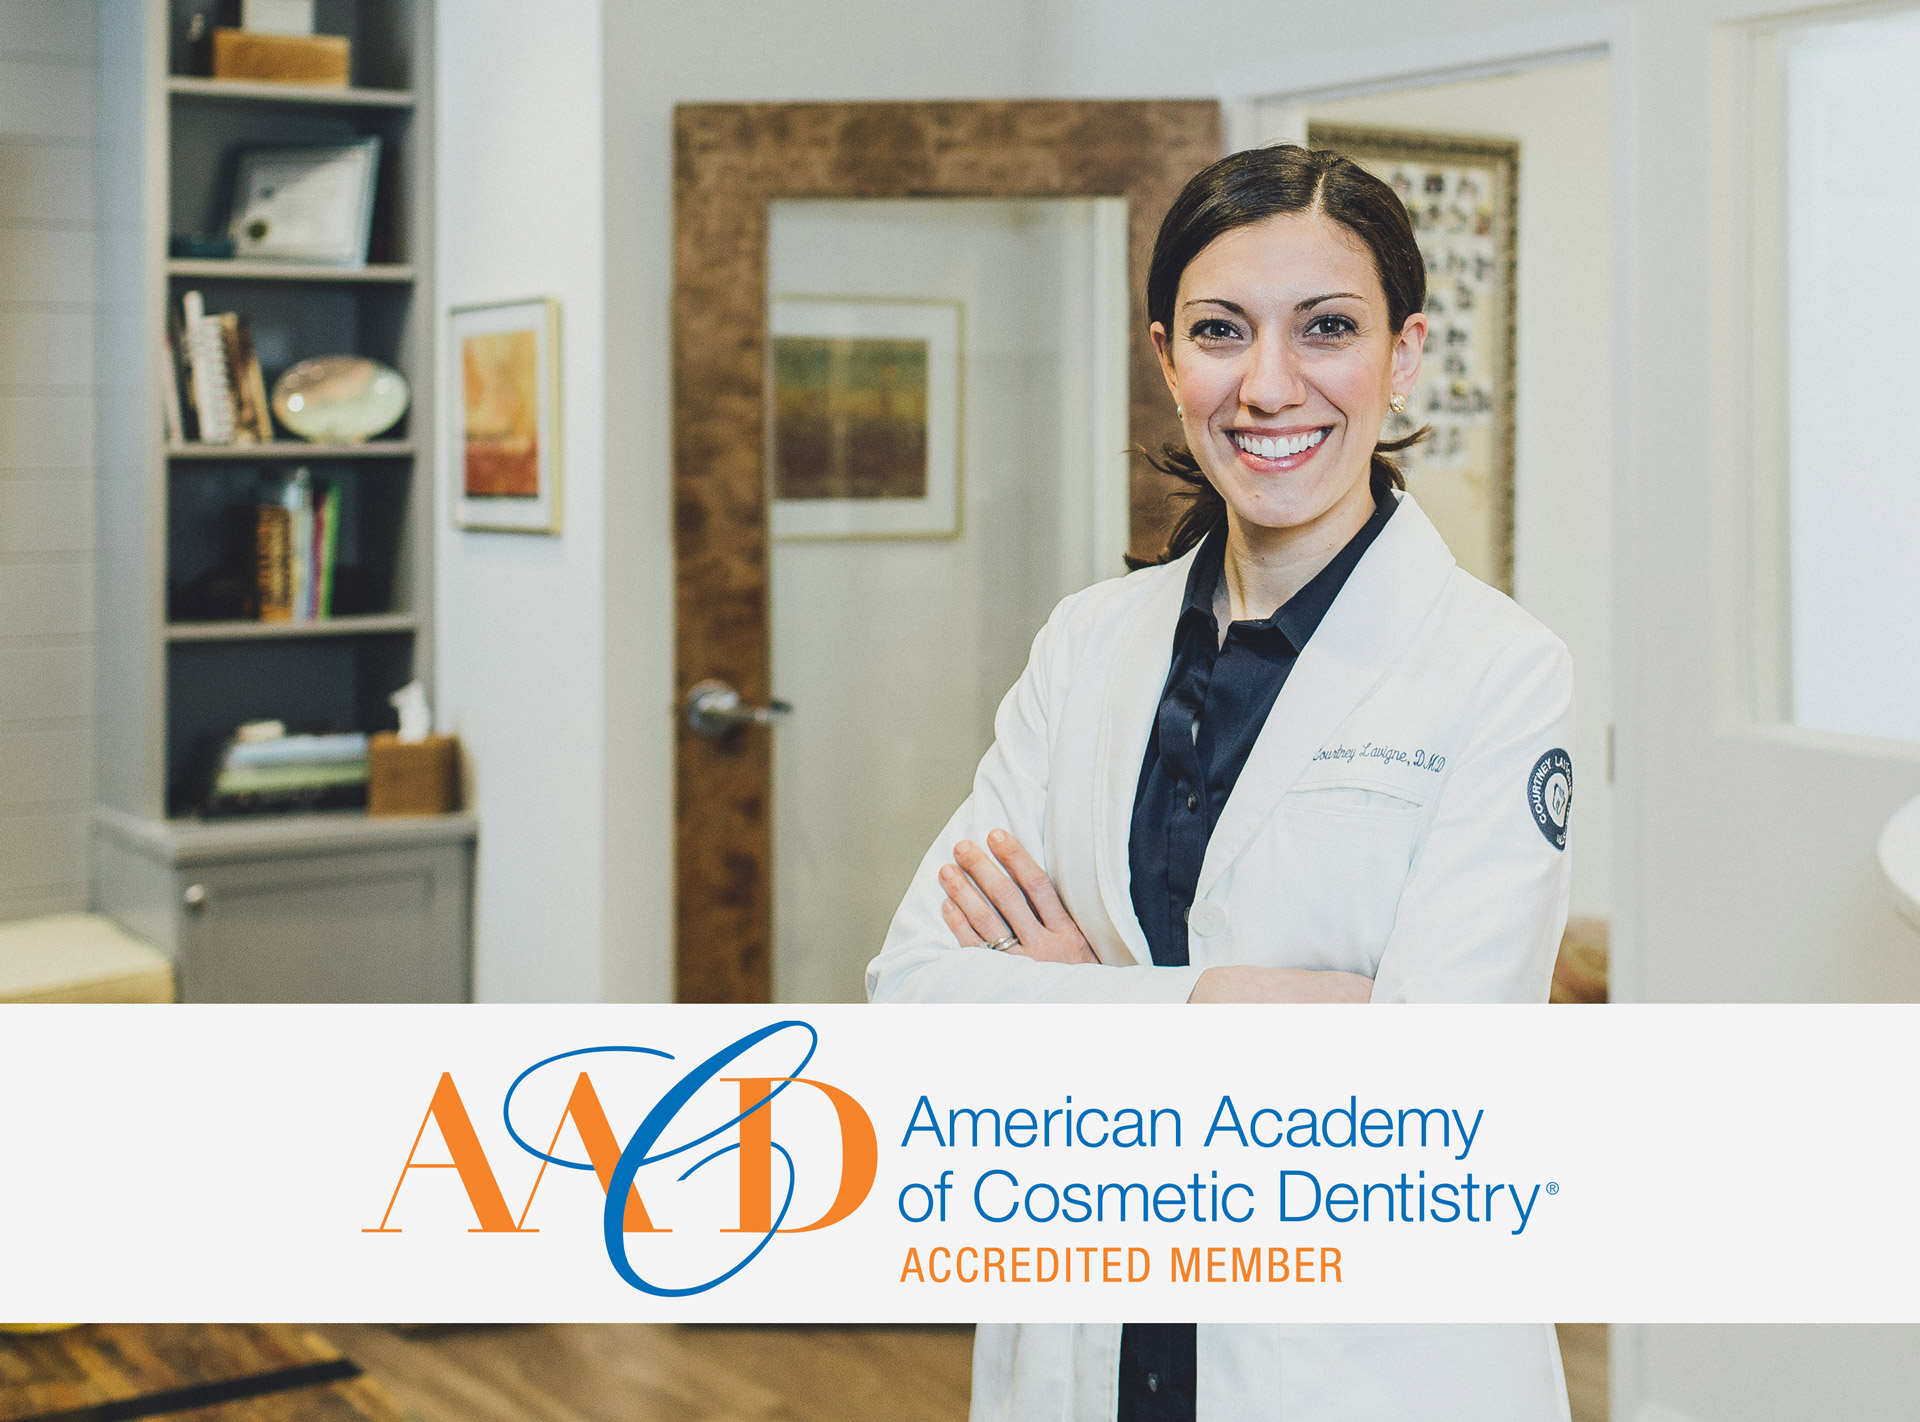 AACD Accreditation - Dr. Lavigne is a recently Accredited Member in the American Academy of Cosmetic Dentistry, which is the most rigorous accreditation protocol in the industry.